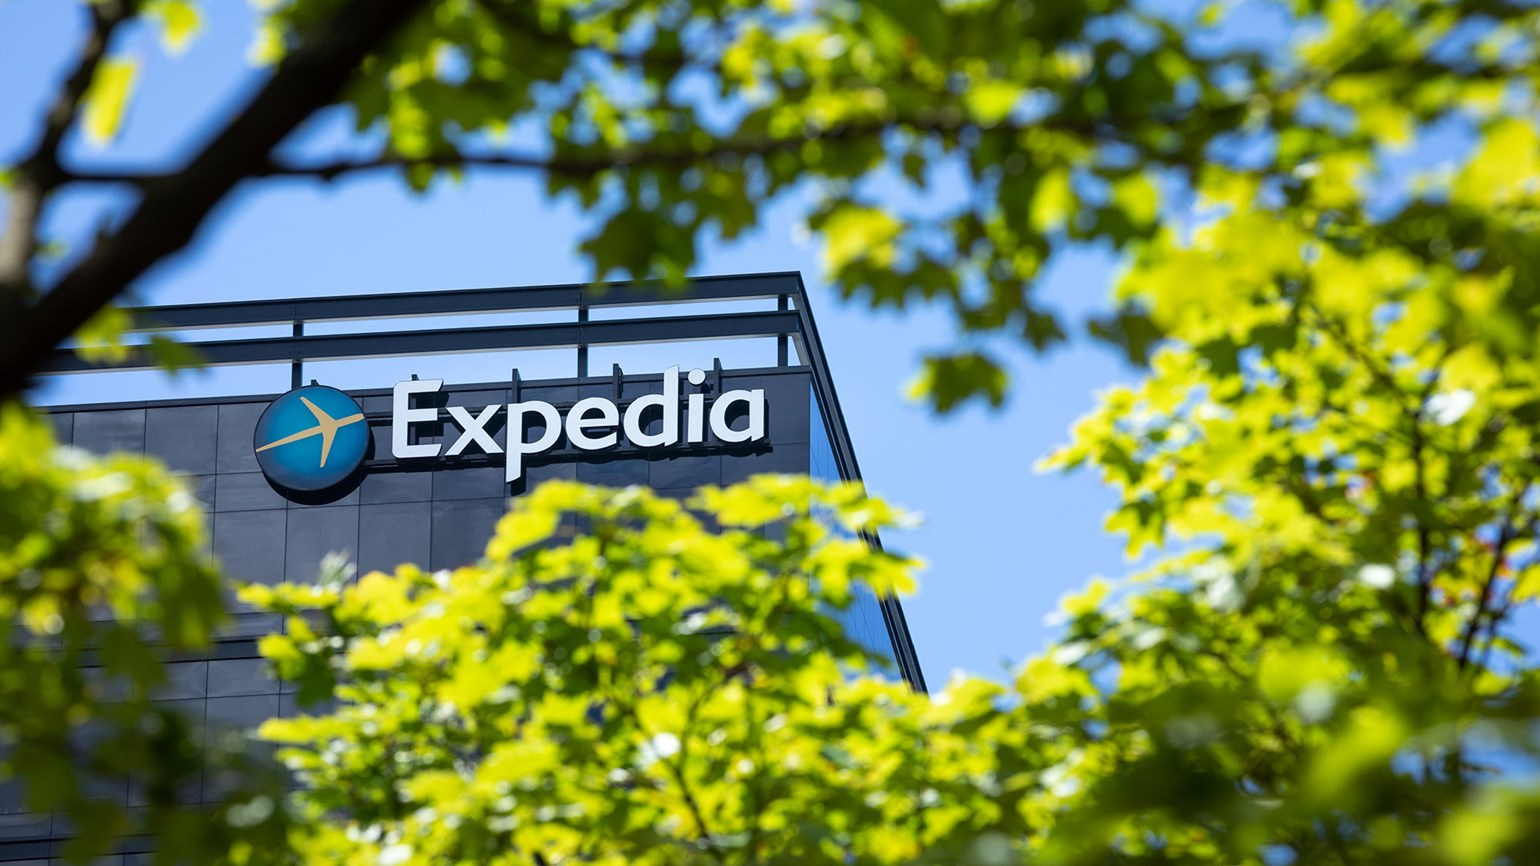 Expedia headquarters [Credit: VDB Photos/Shutterstock.com]